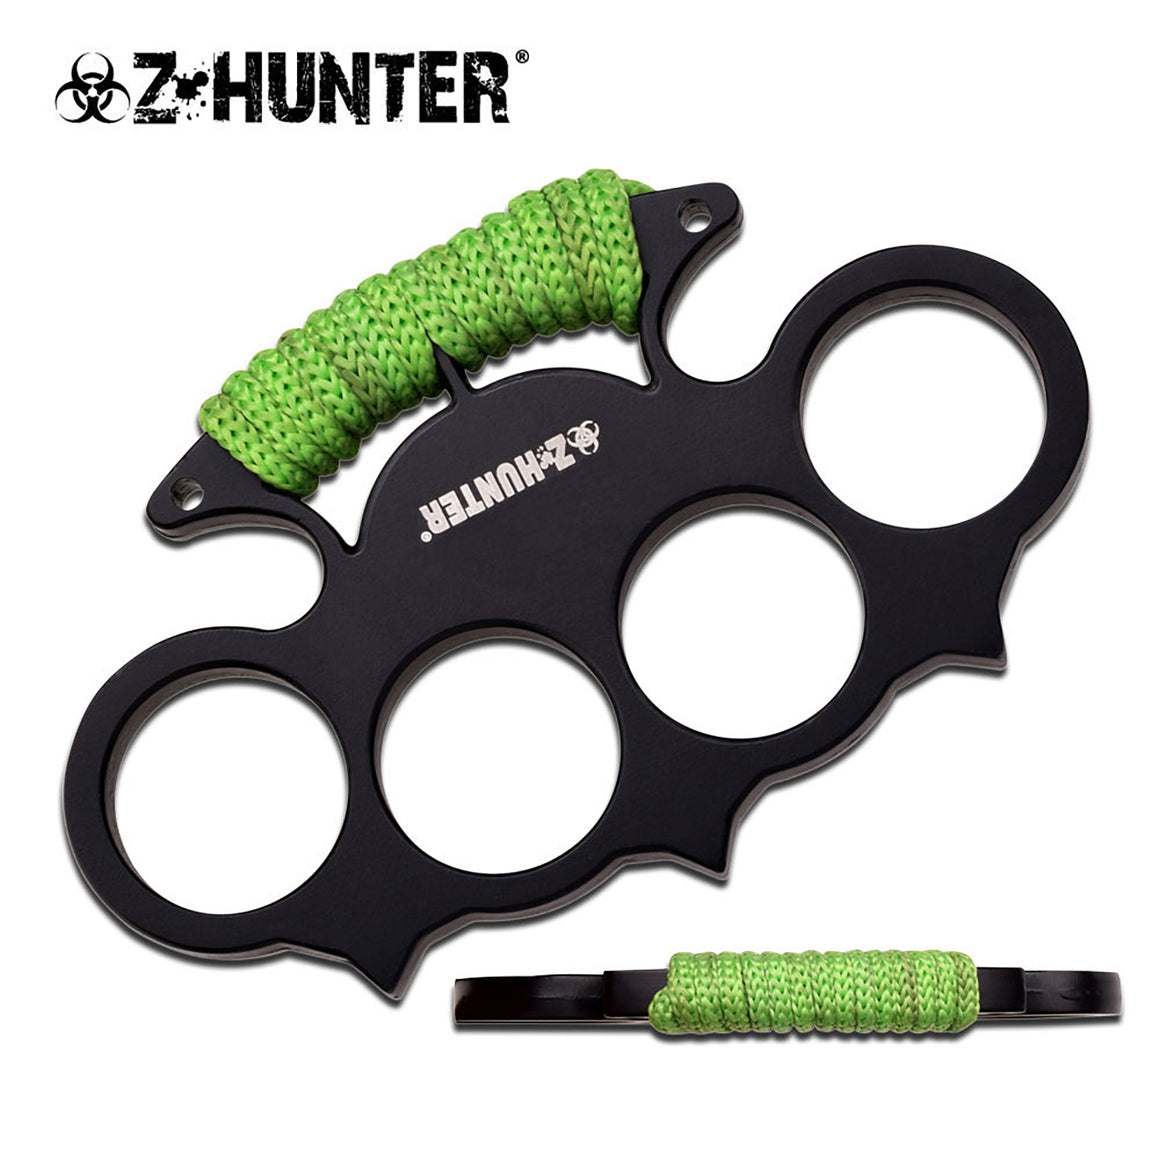 Z-Hunter ZB-145 Knuckle